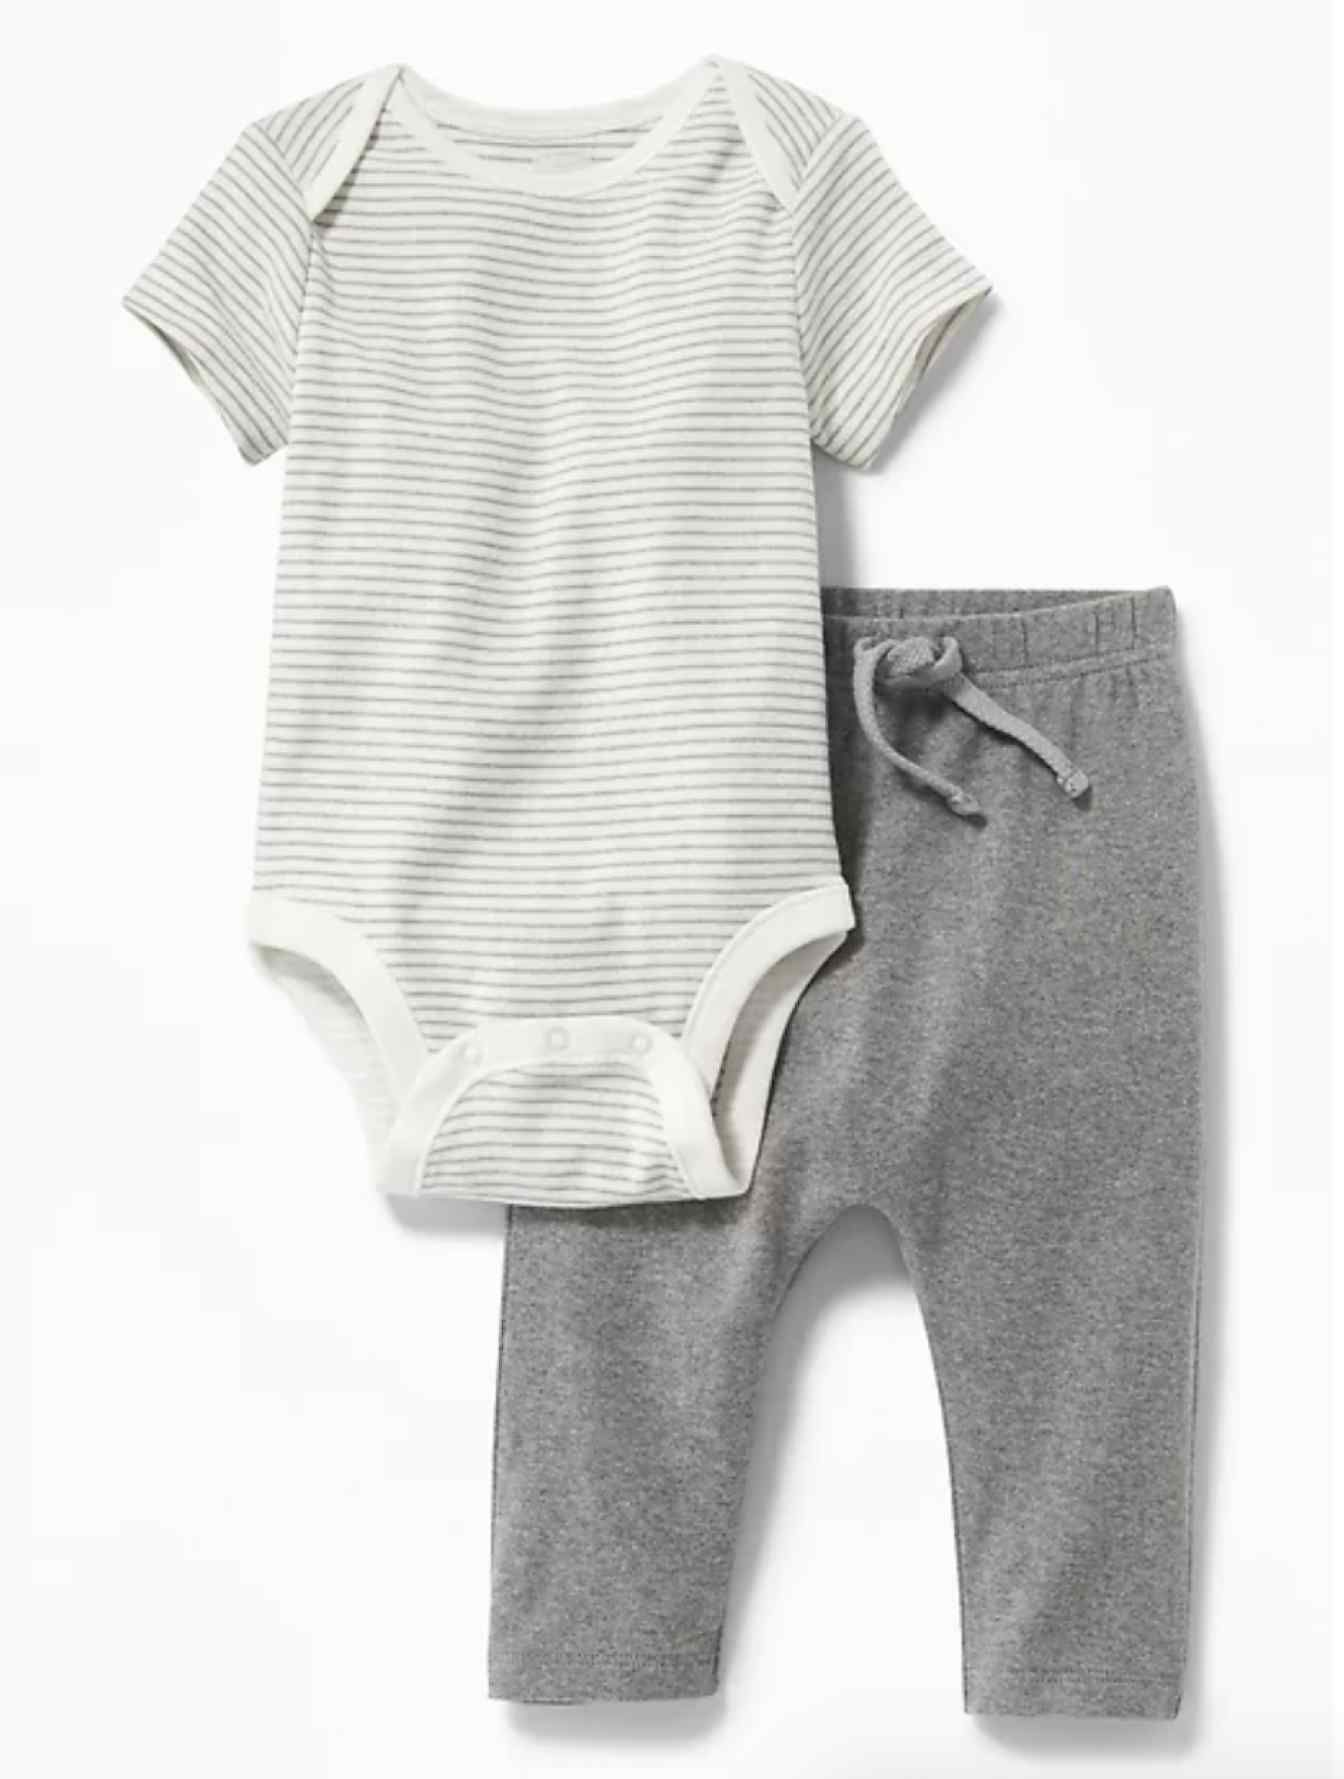 c62a260781cfd Old Navy's having a MAJOR sale on toddler + baby clothes (items ...